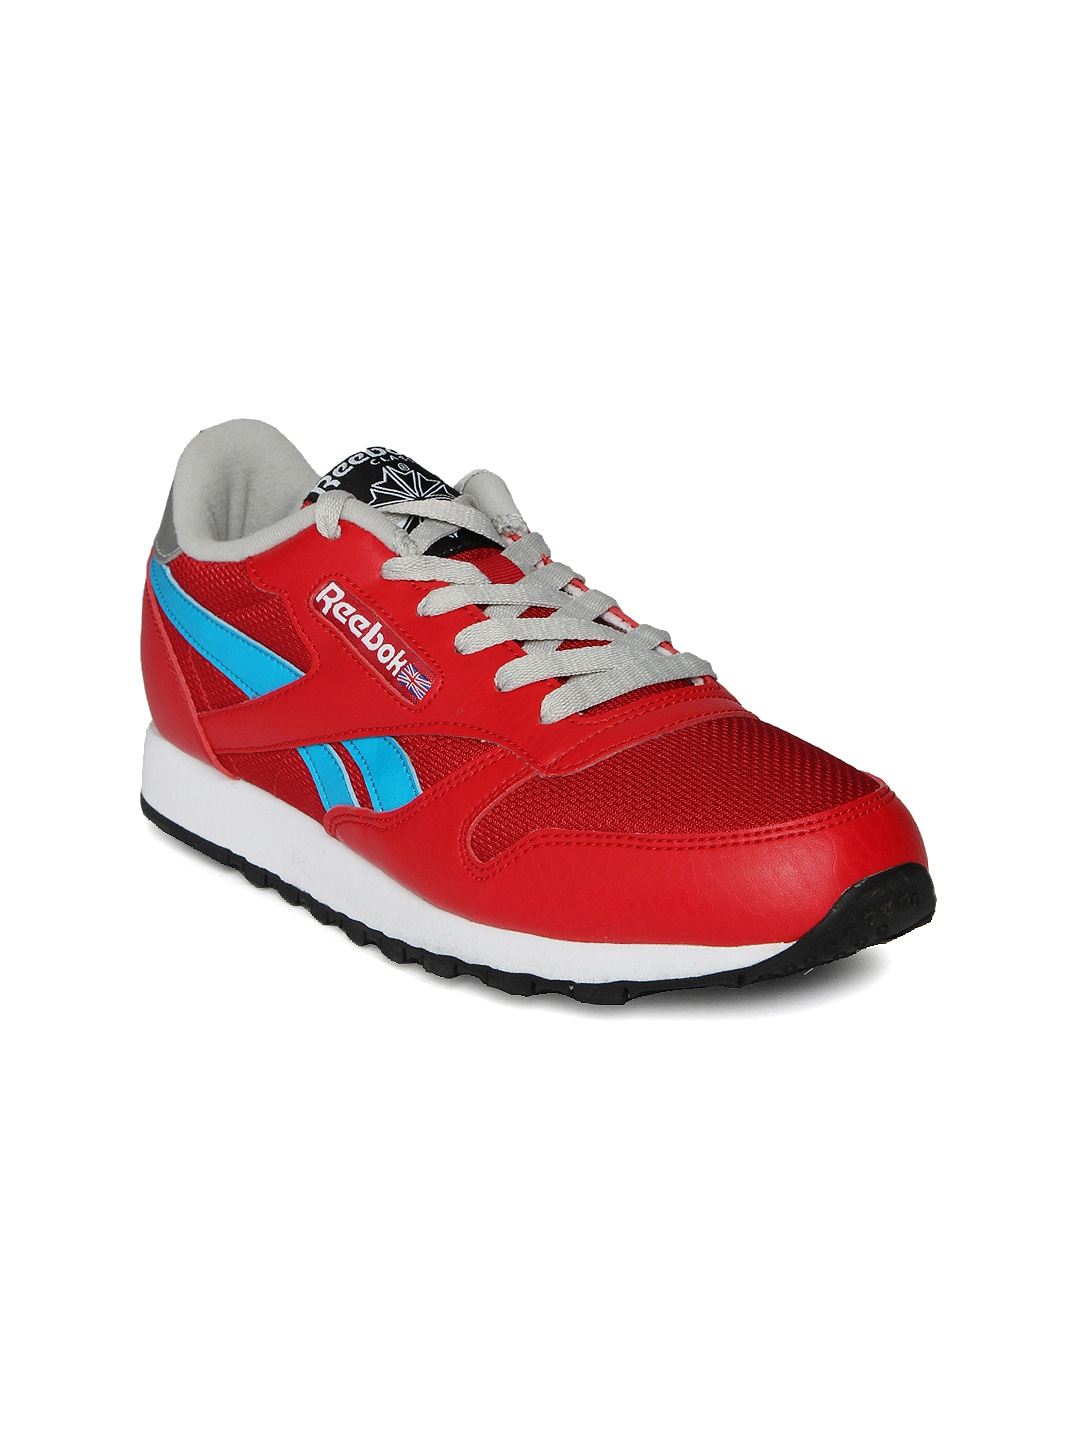 343cb332400daa Reebok bs5523 Women Red Classic Protonium Running Shoes- Price in India